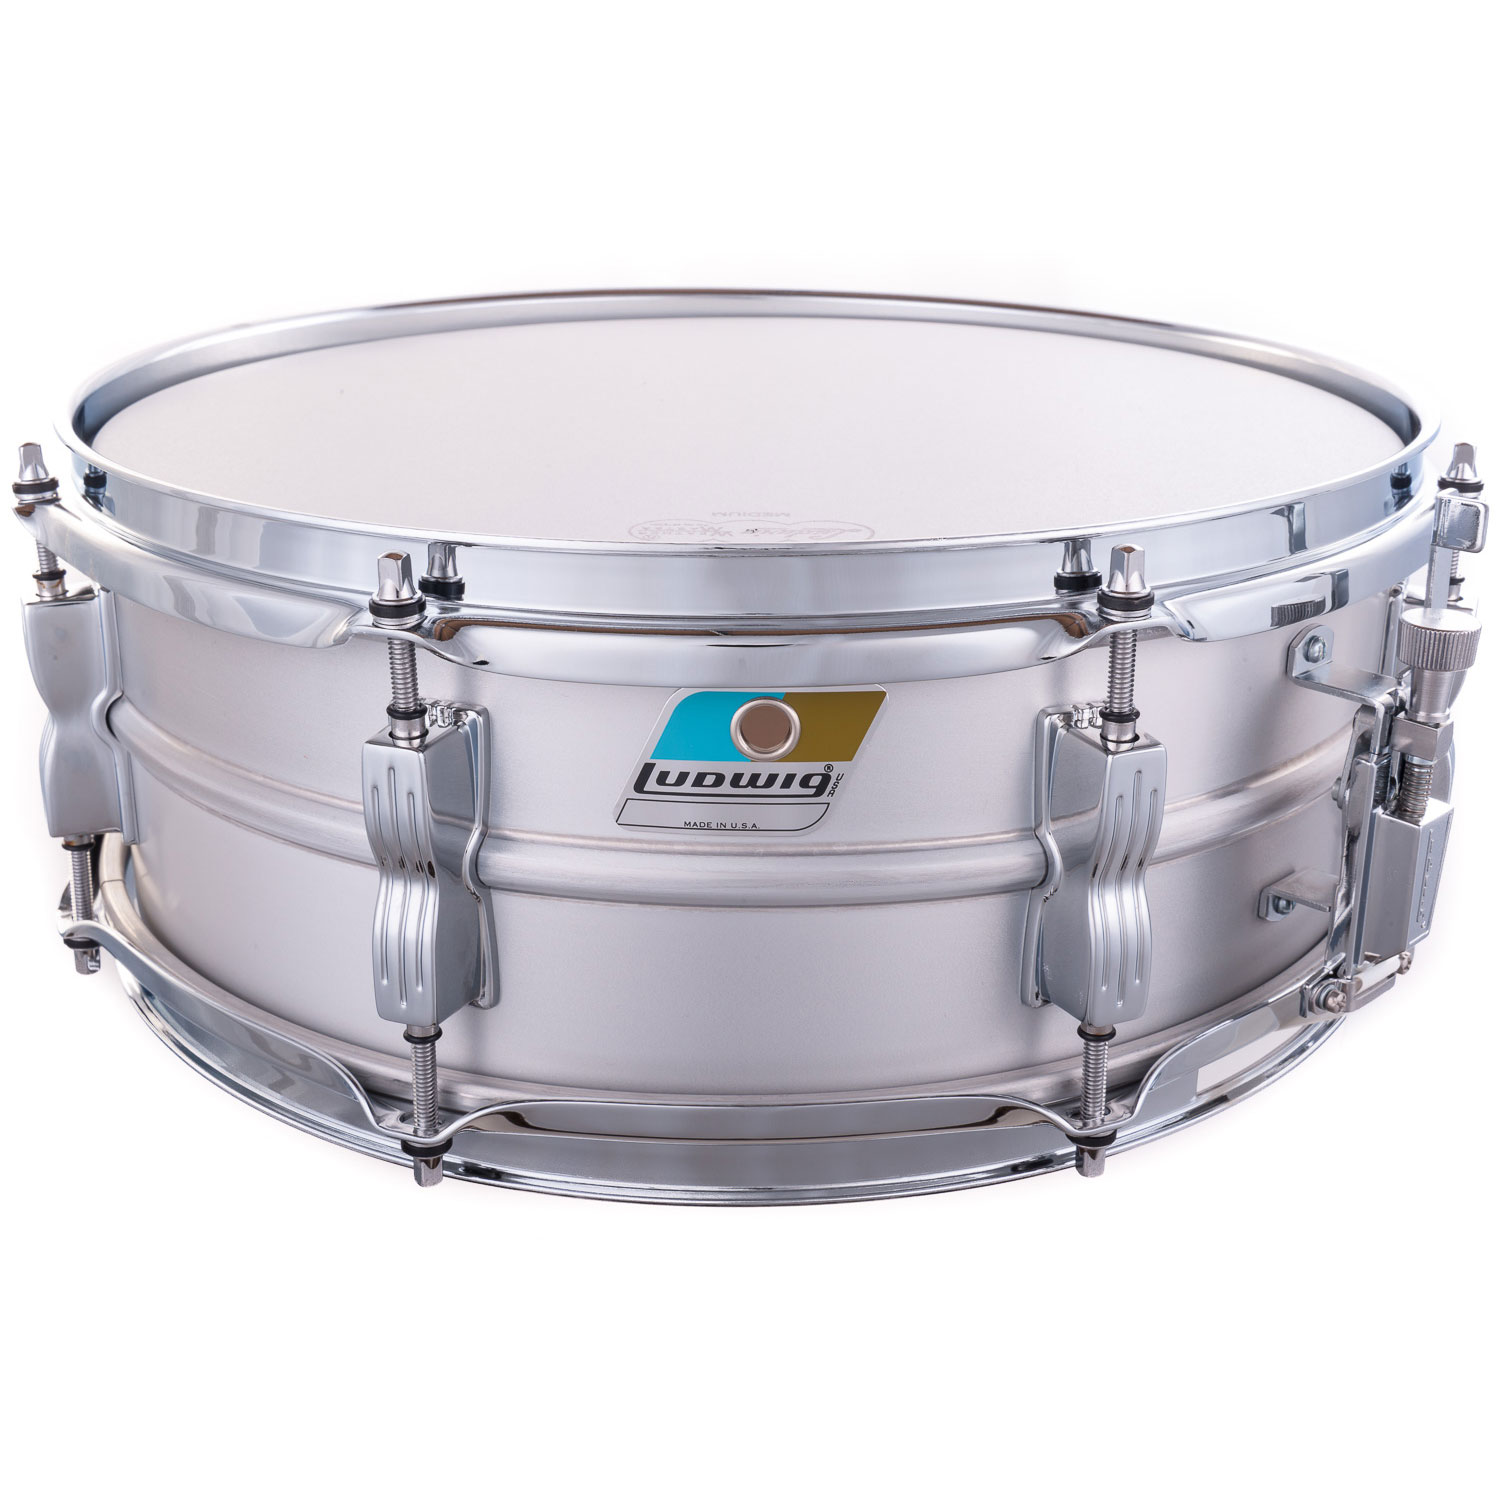 "Ludwig 5"" x 14"" Acrolite Classic Snare Drum"